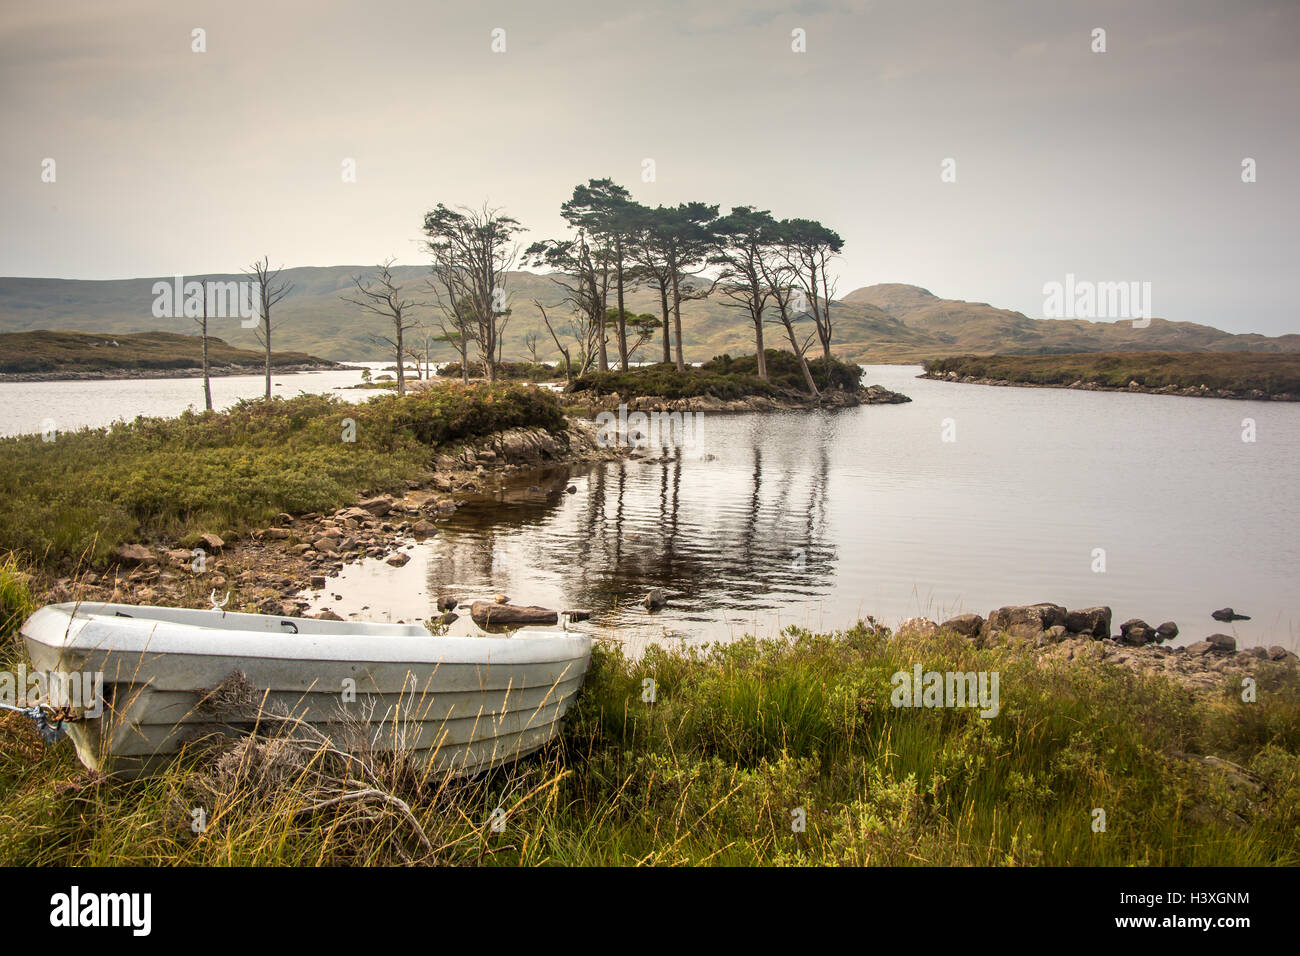 The edge of Loch Assynt - Stock Image